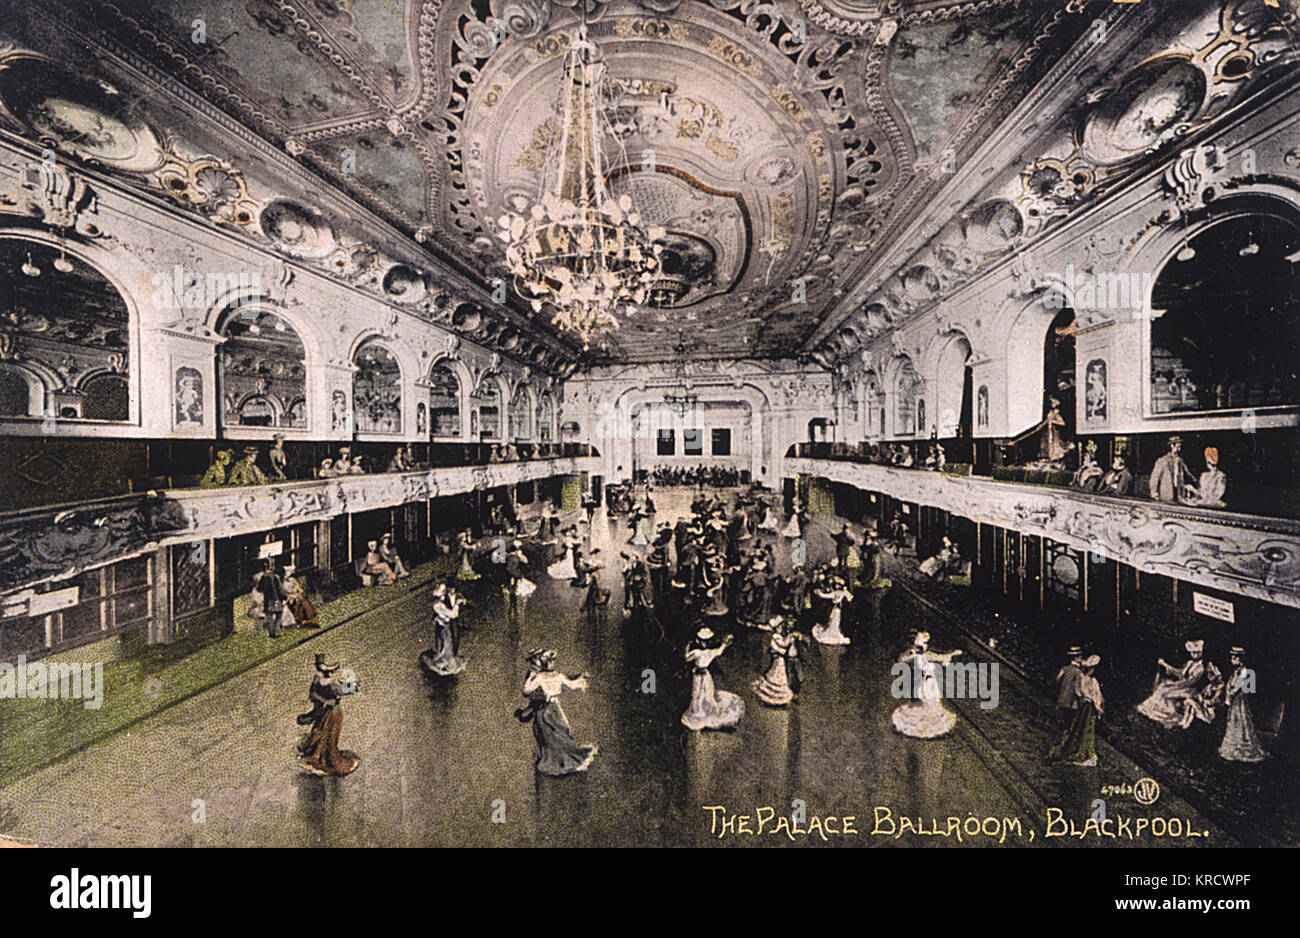 Ladies in long skirts swirl across the spacious dance floor of the Palace Ballroom, Blackpool : skilful retouching - Stock Image